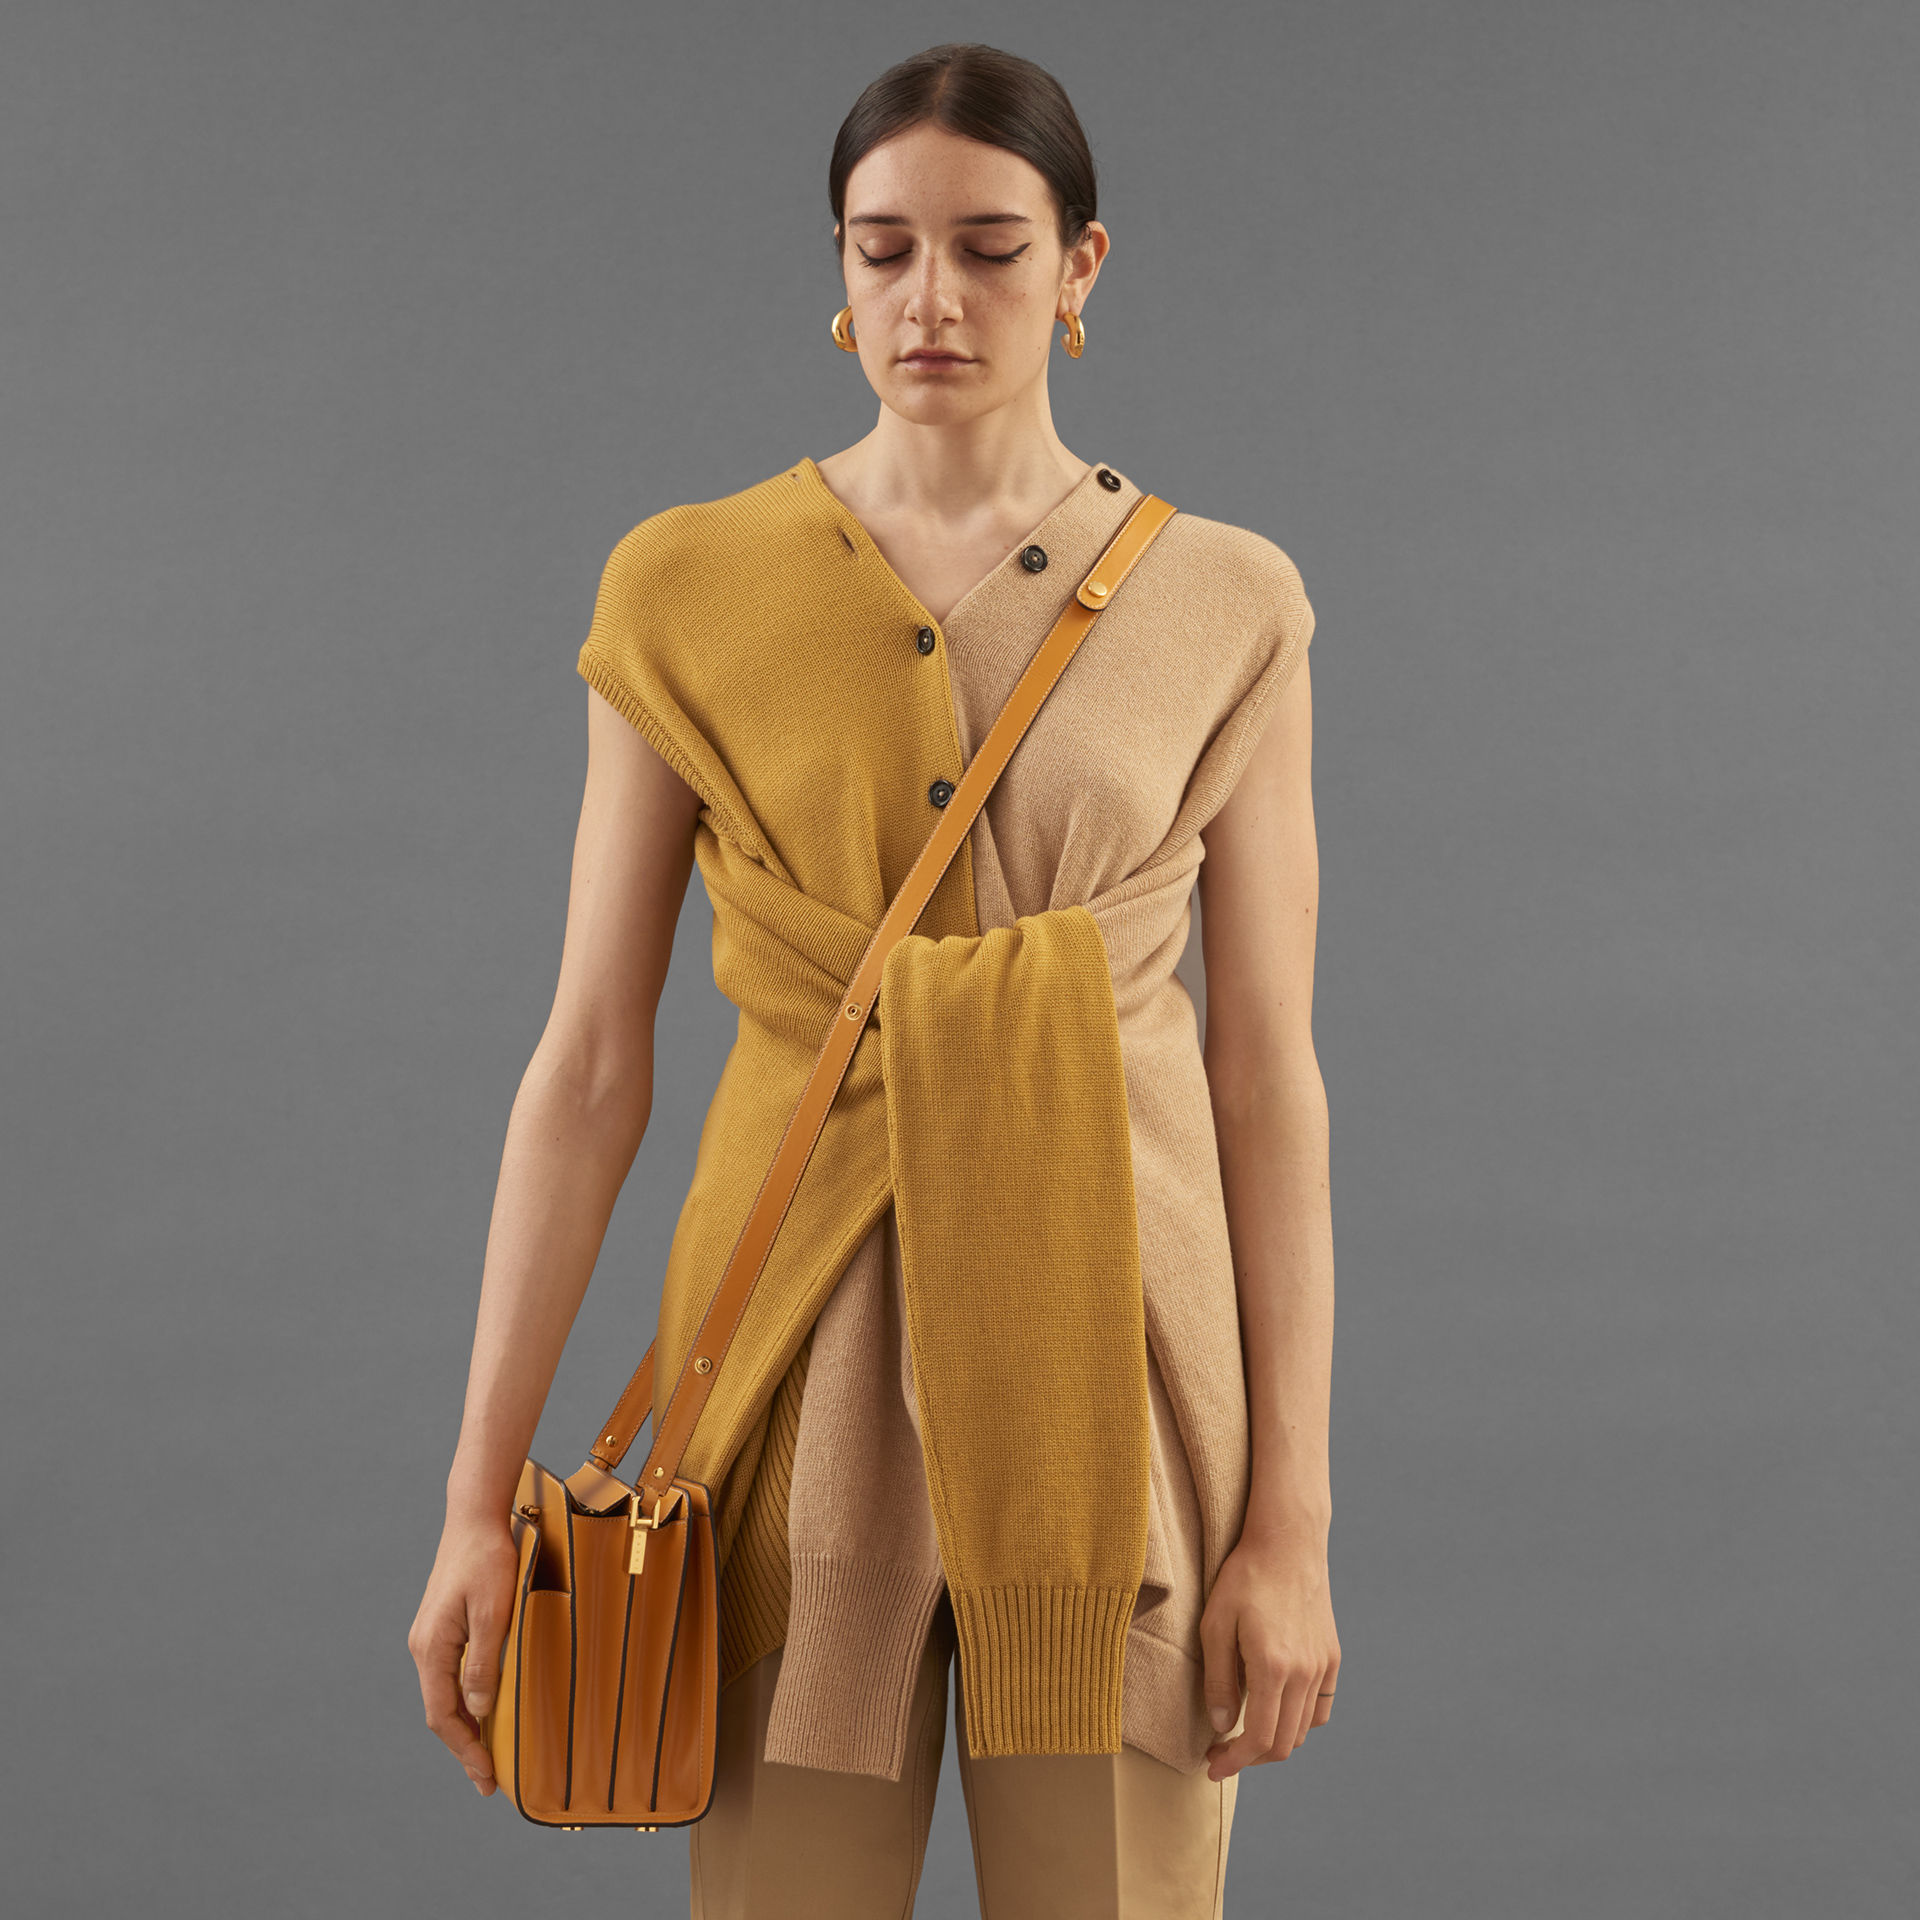 Model wears a yellow sweater from the Resort 2020 Collection